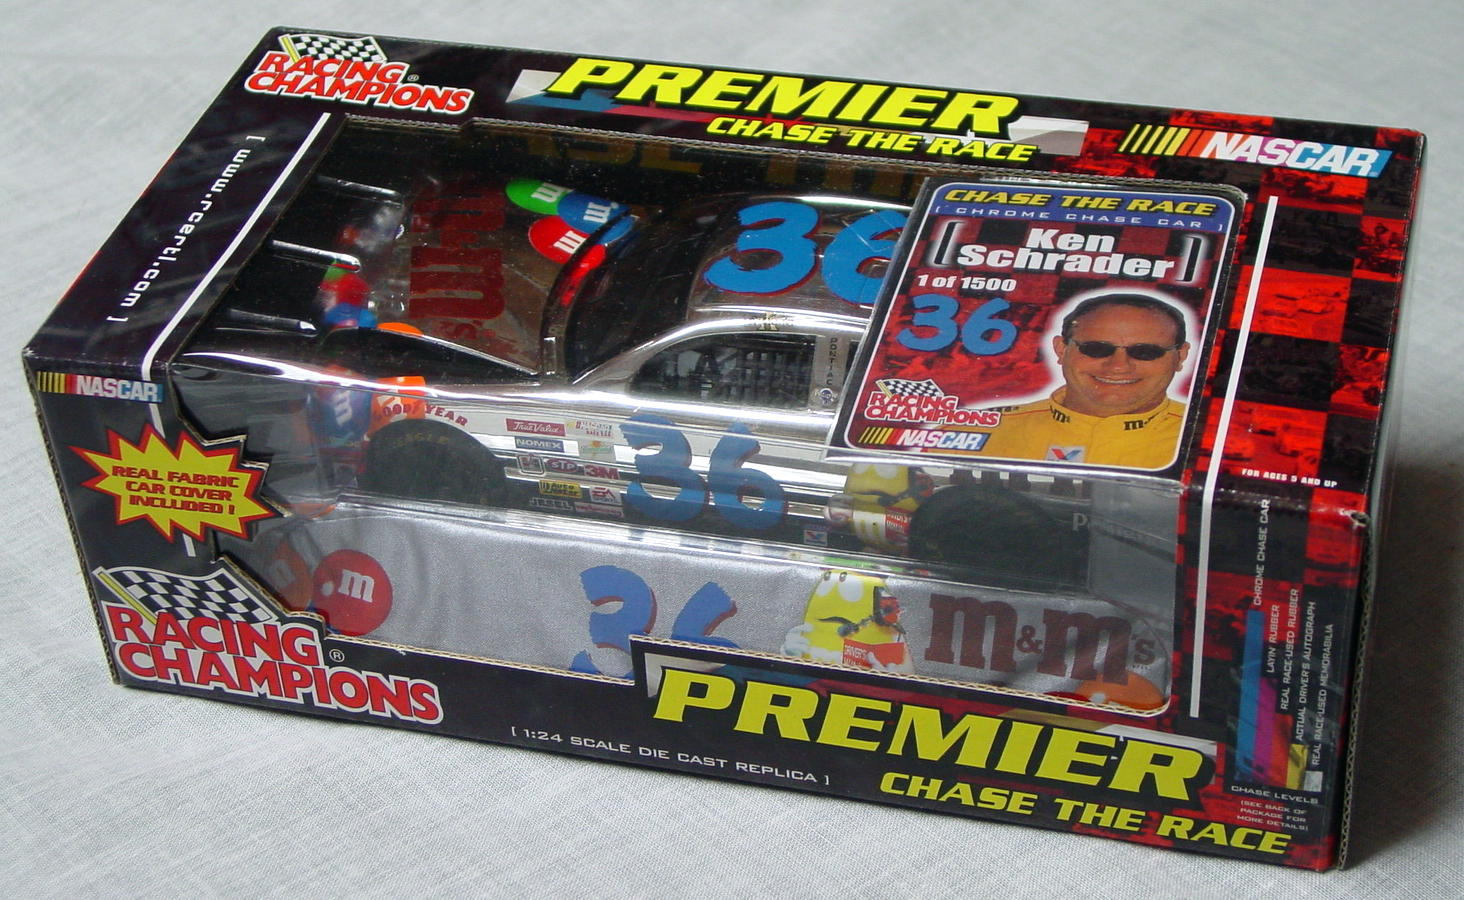 1_24 Scale - RC Chrome Chase Ken Schrader 1/1500